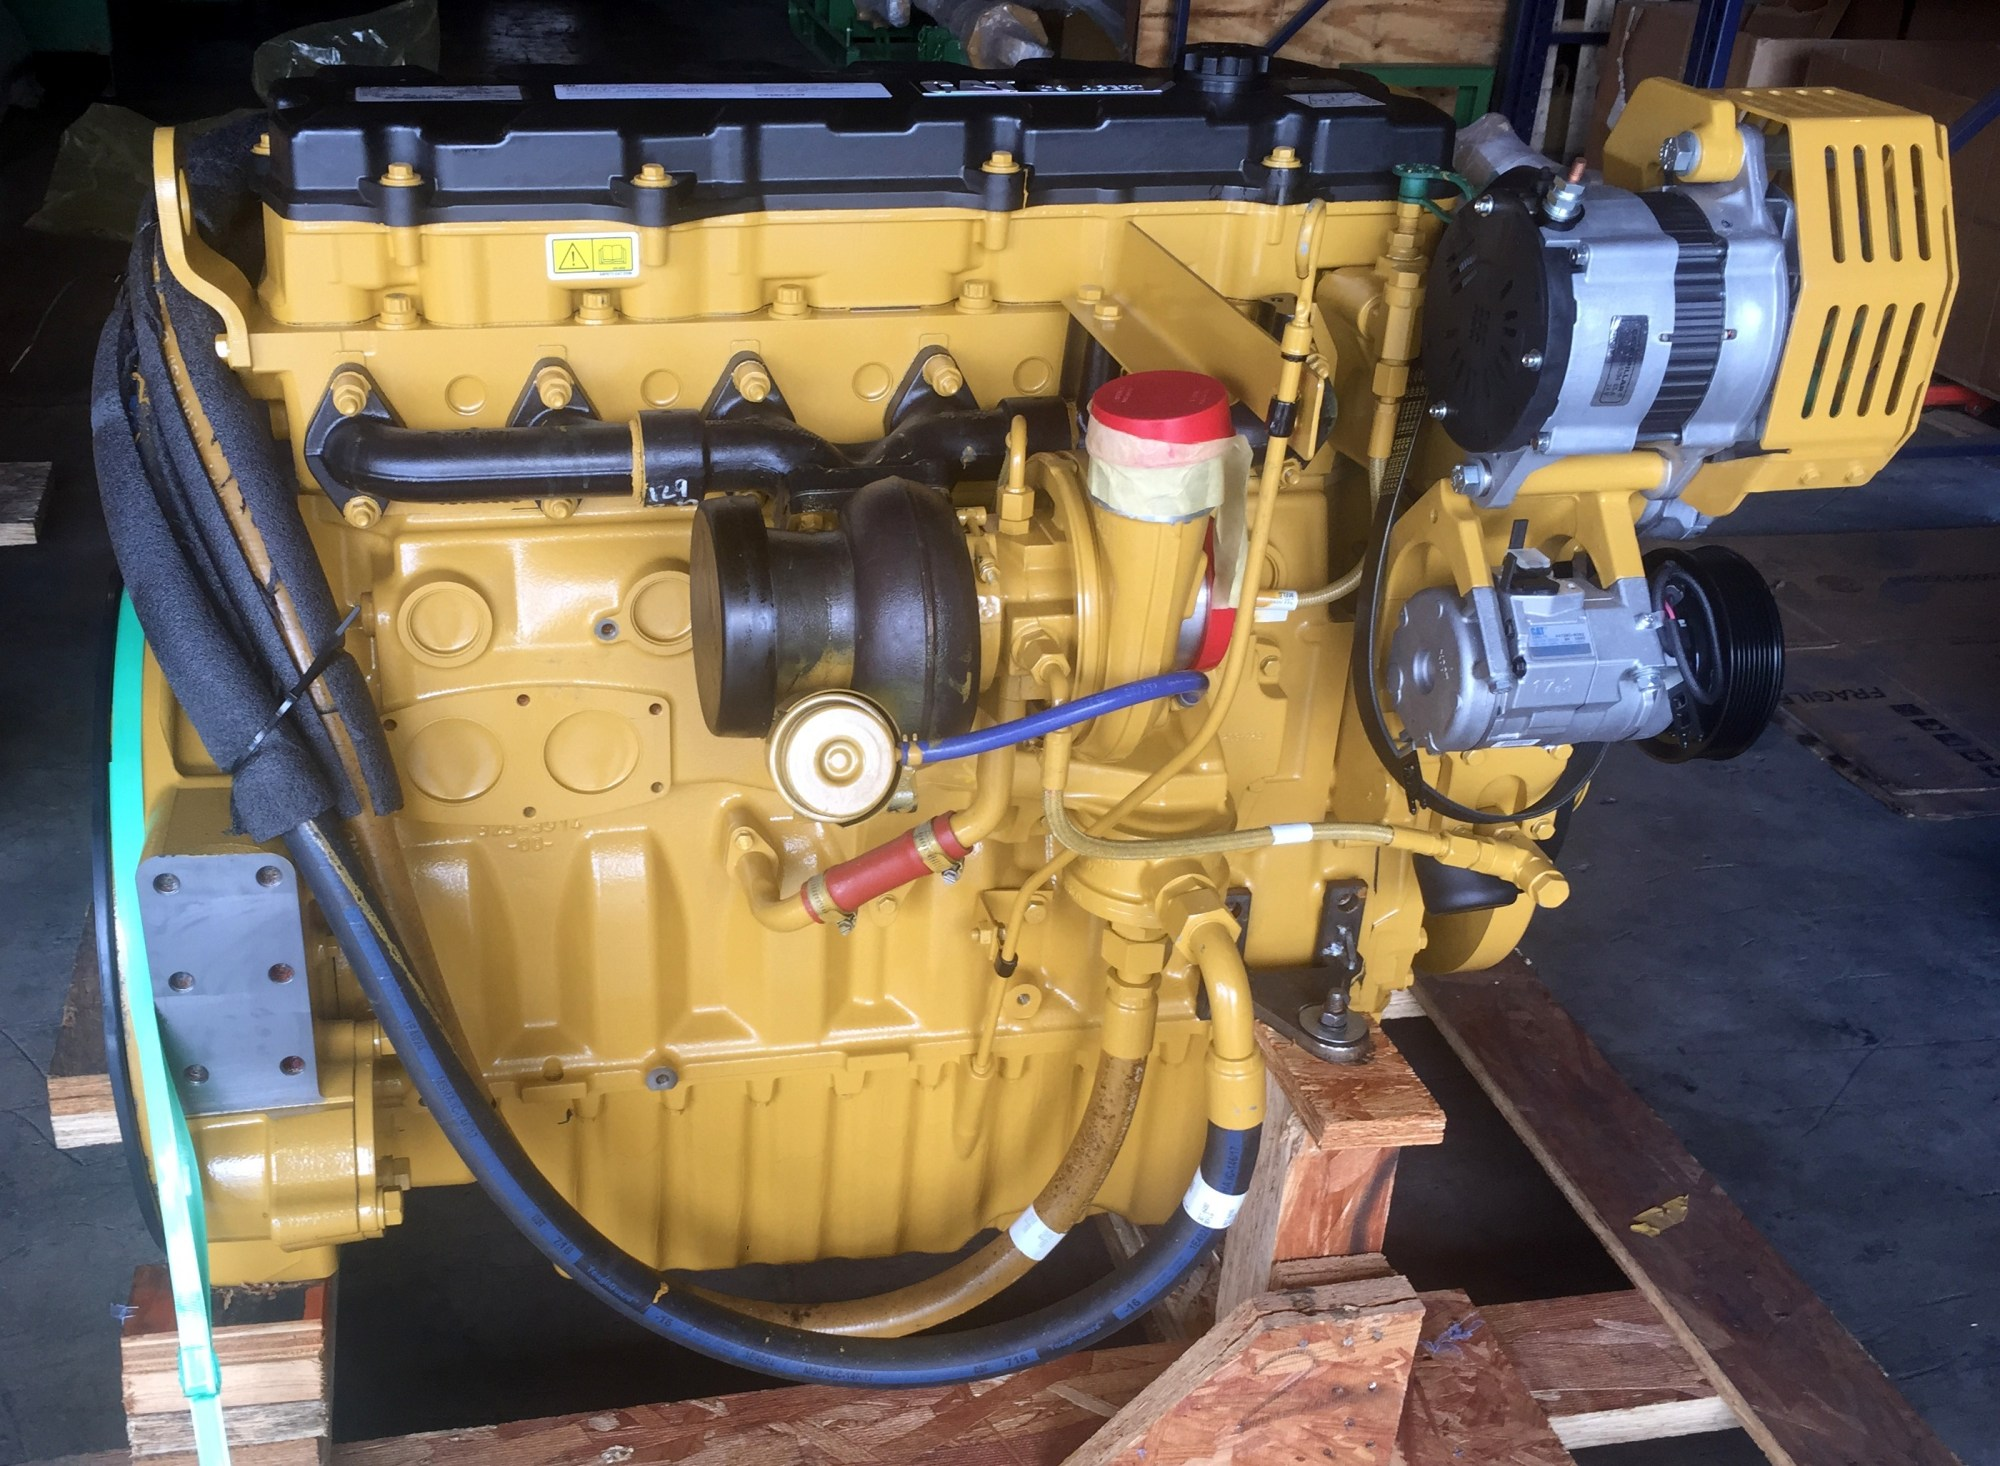 hight resolution of this will work with cat 336d caterpillar 330d caterpillar 345 caterpillar 340d cat 330 cat 3516c cat c9 engines